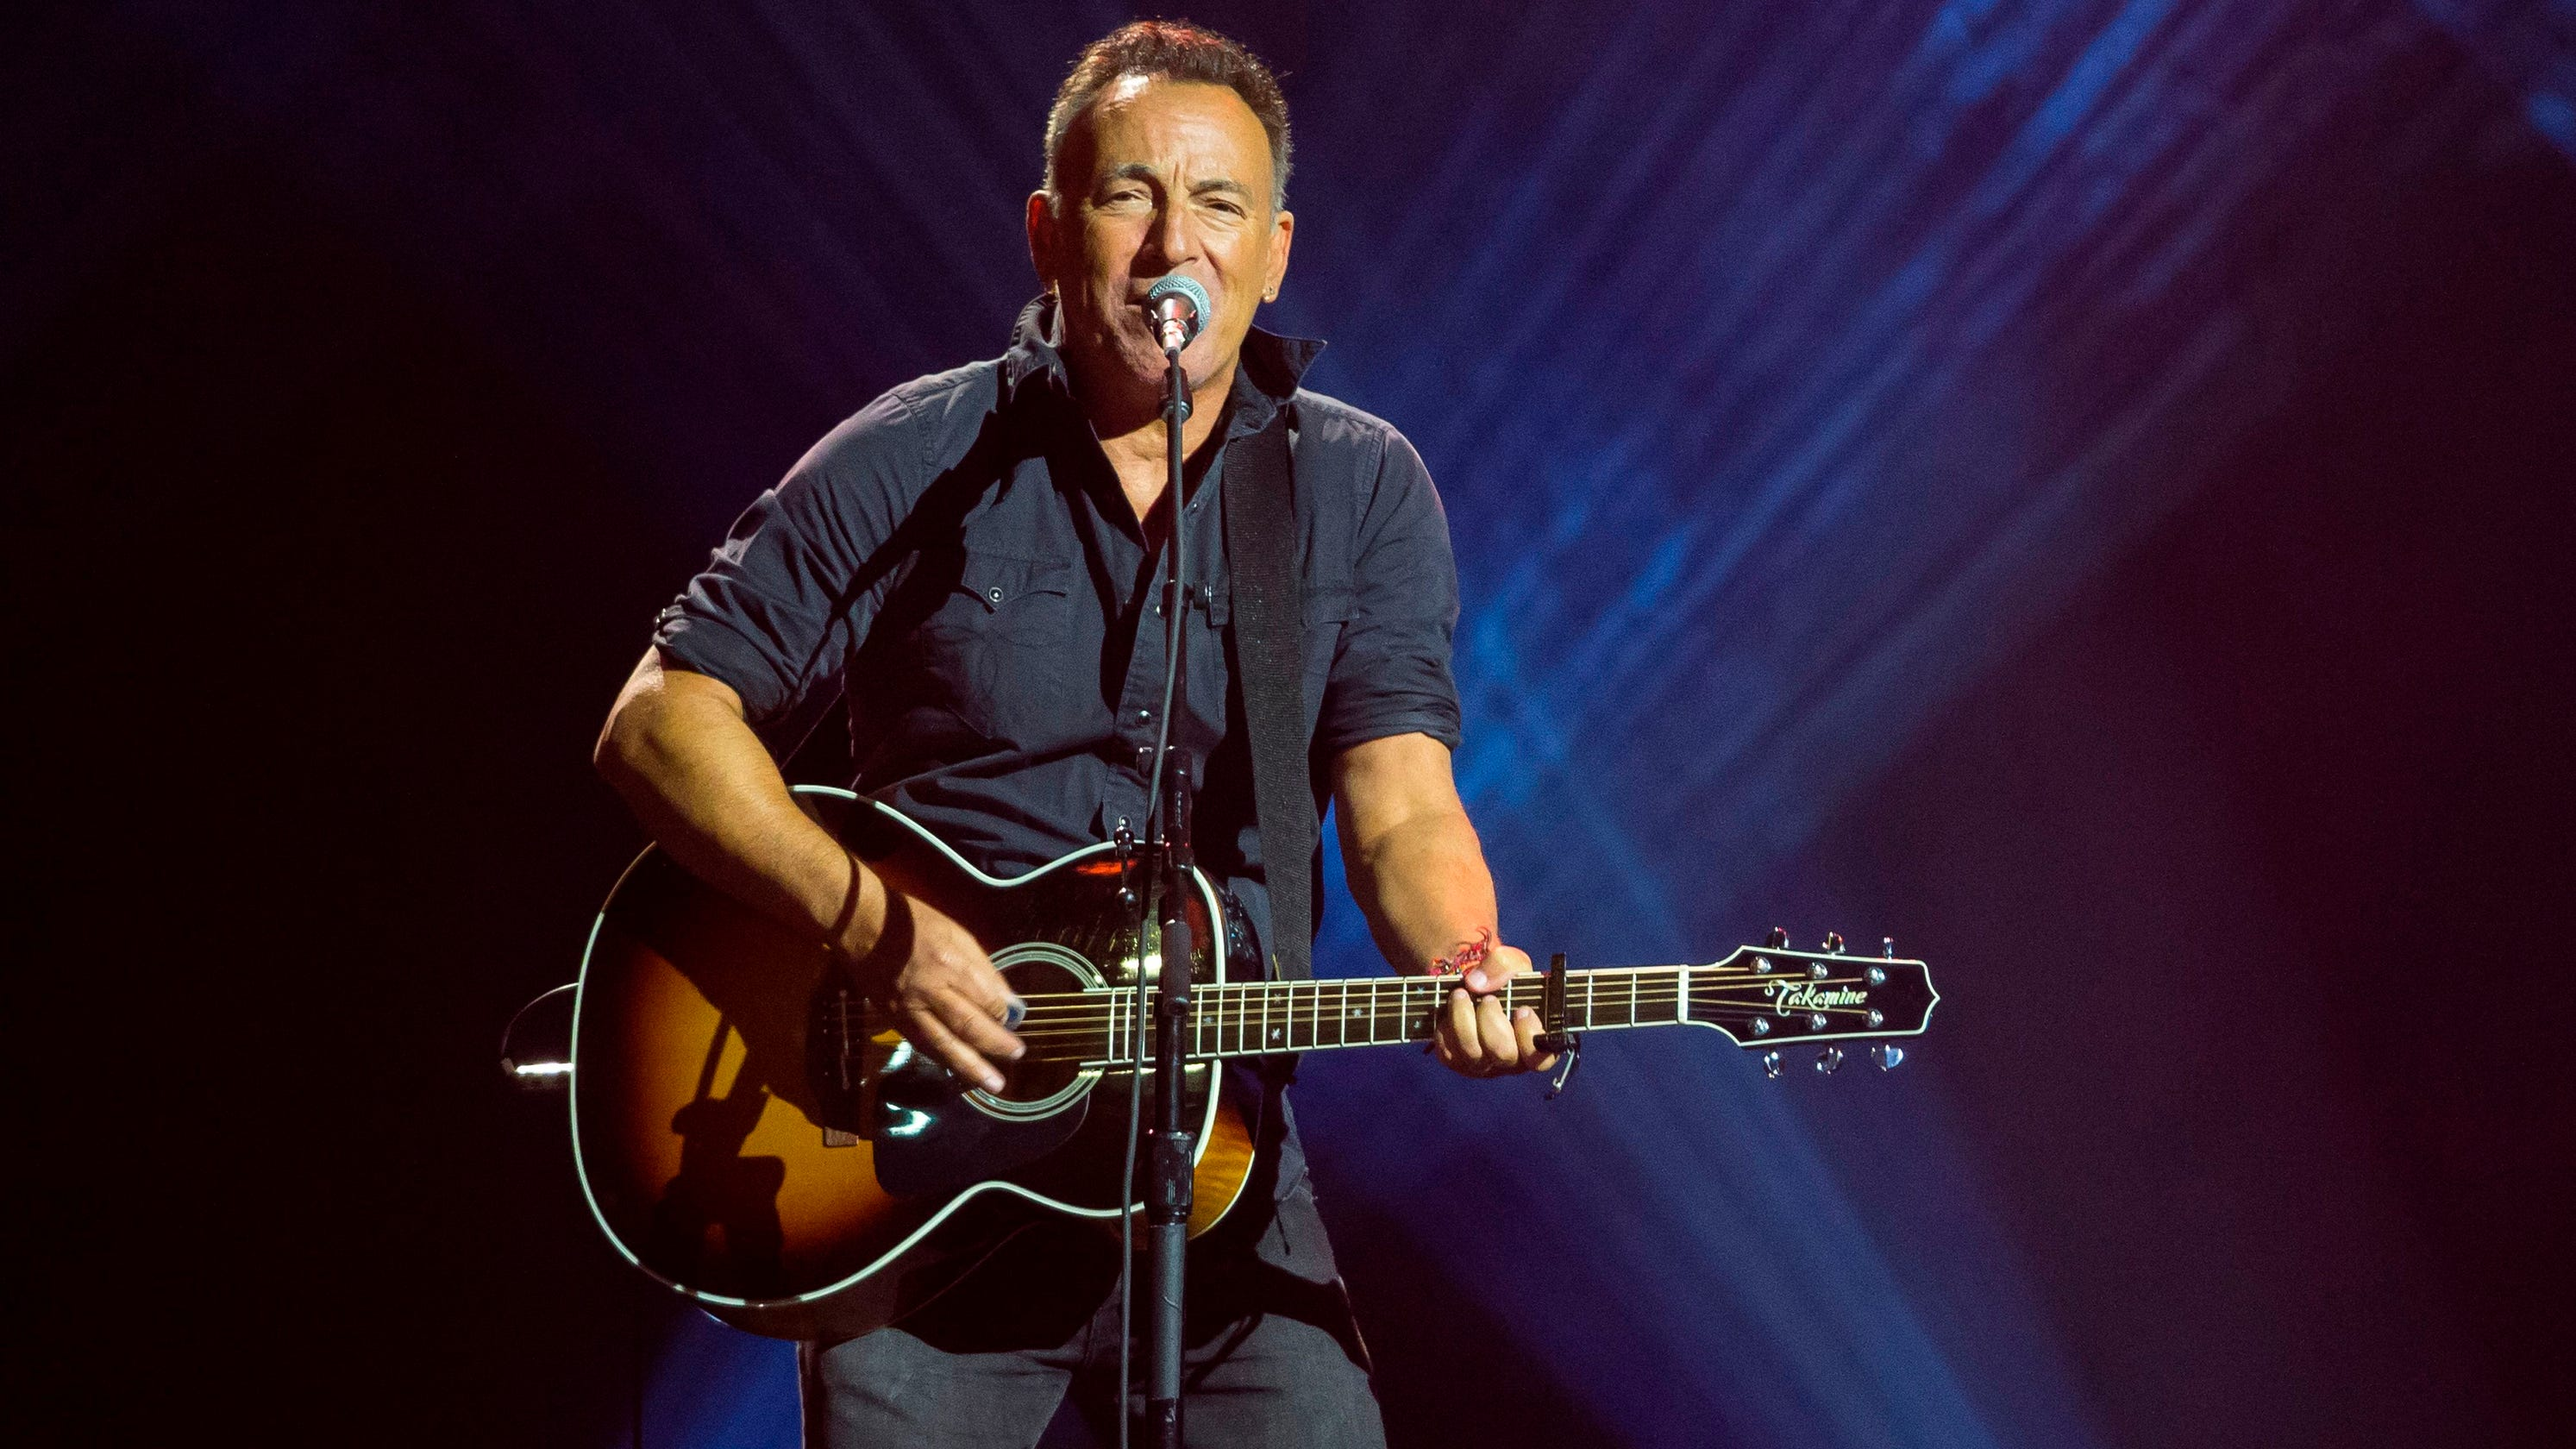 Don't be afraid of Bruce Springsteen's 'Ghosts,' they love to rock 'n' roll: The new song